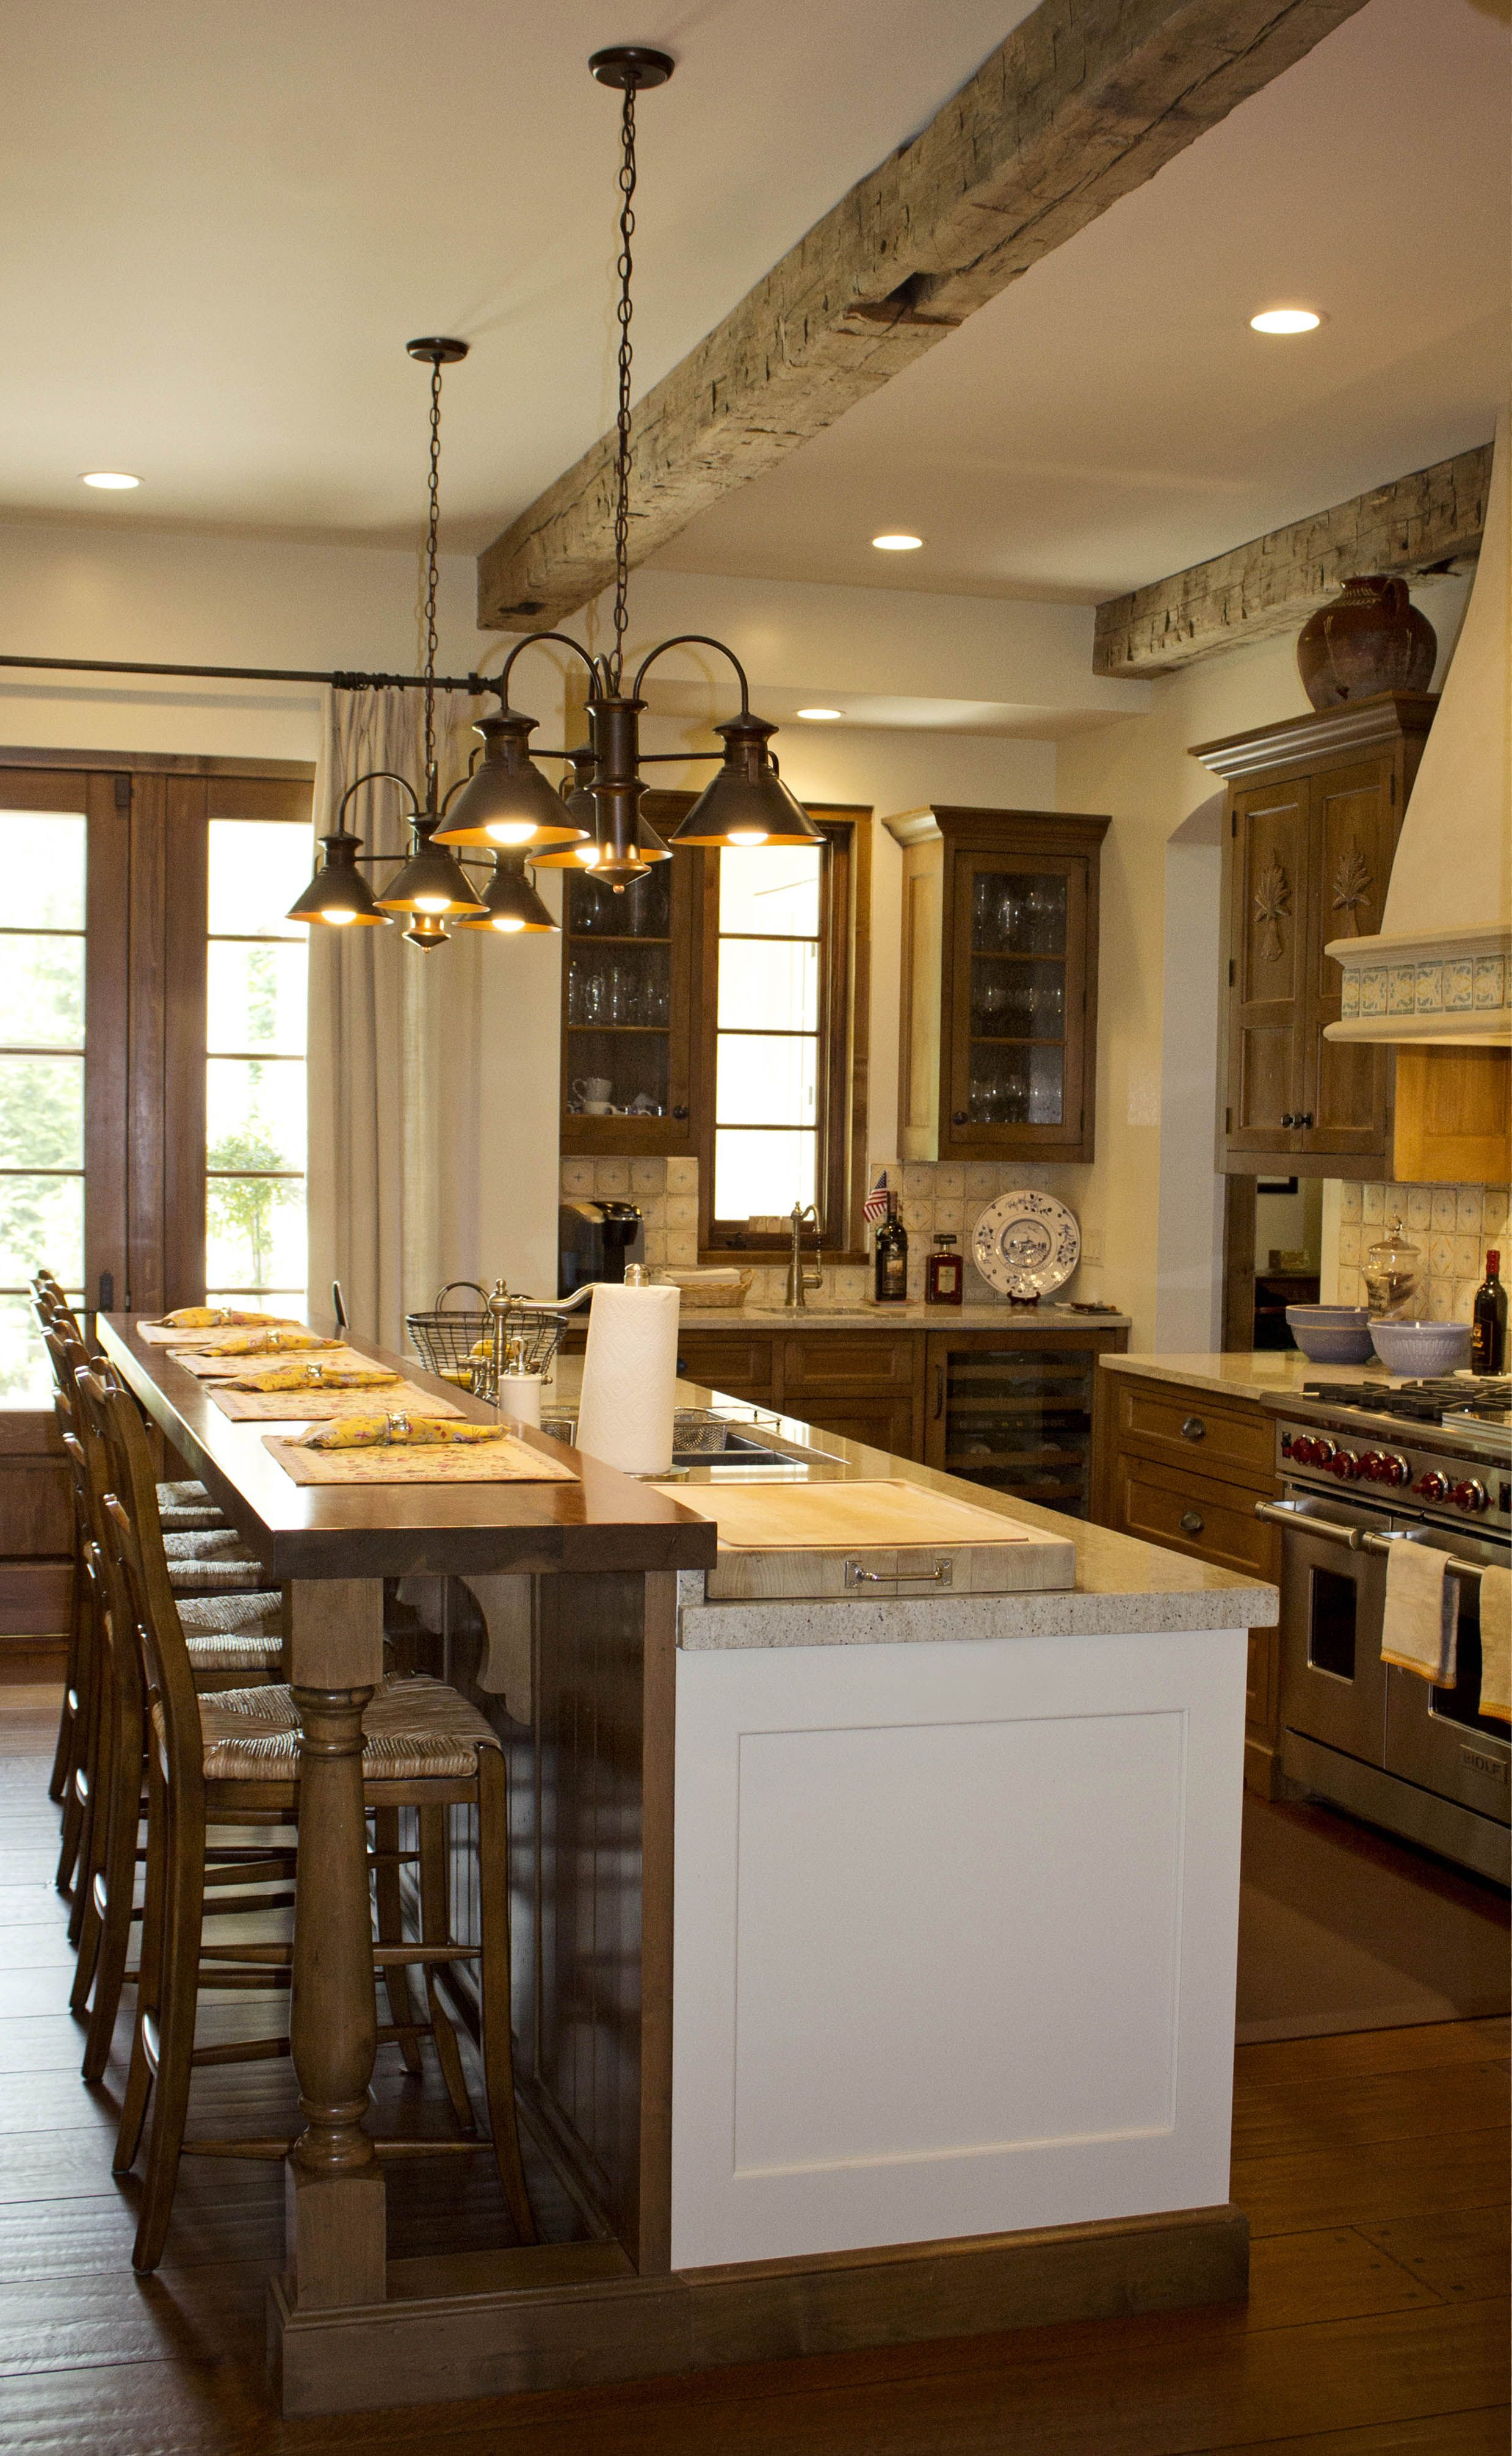 French Country Style Kitchen With Beautiful Reclaimed